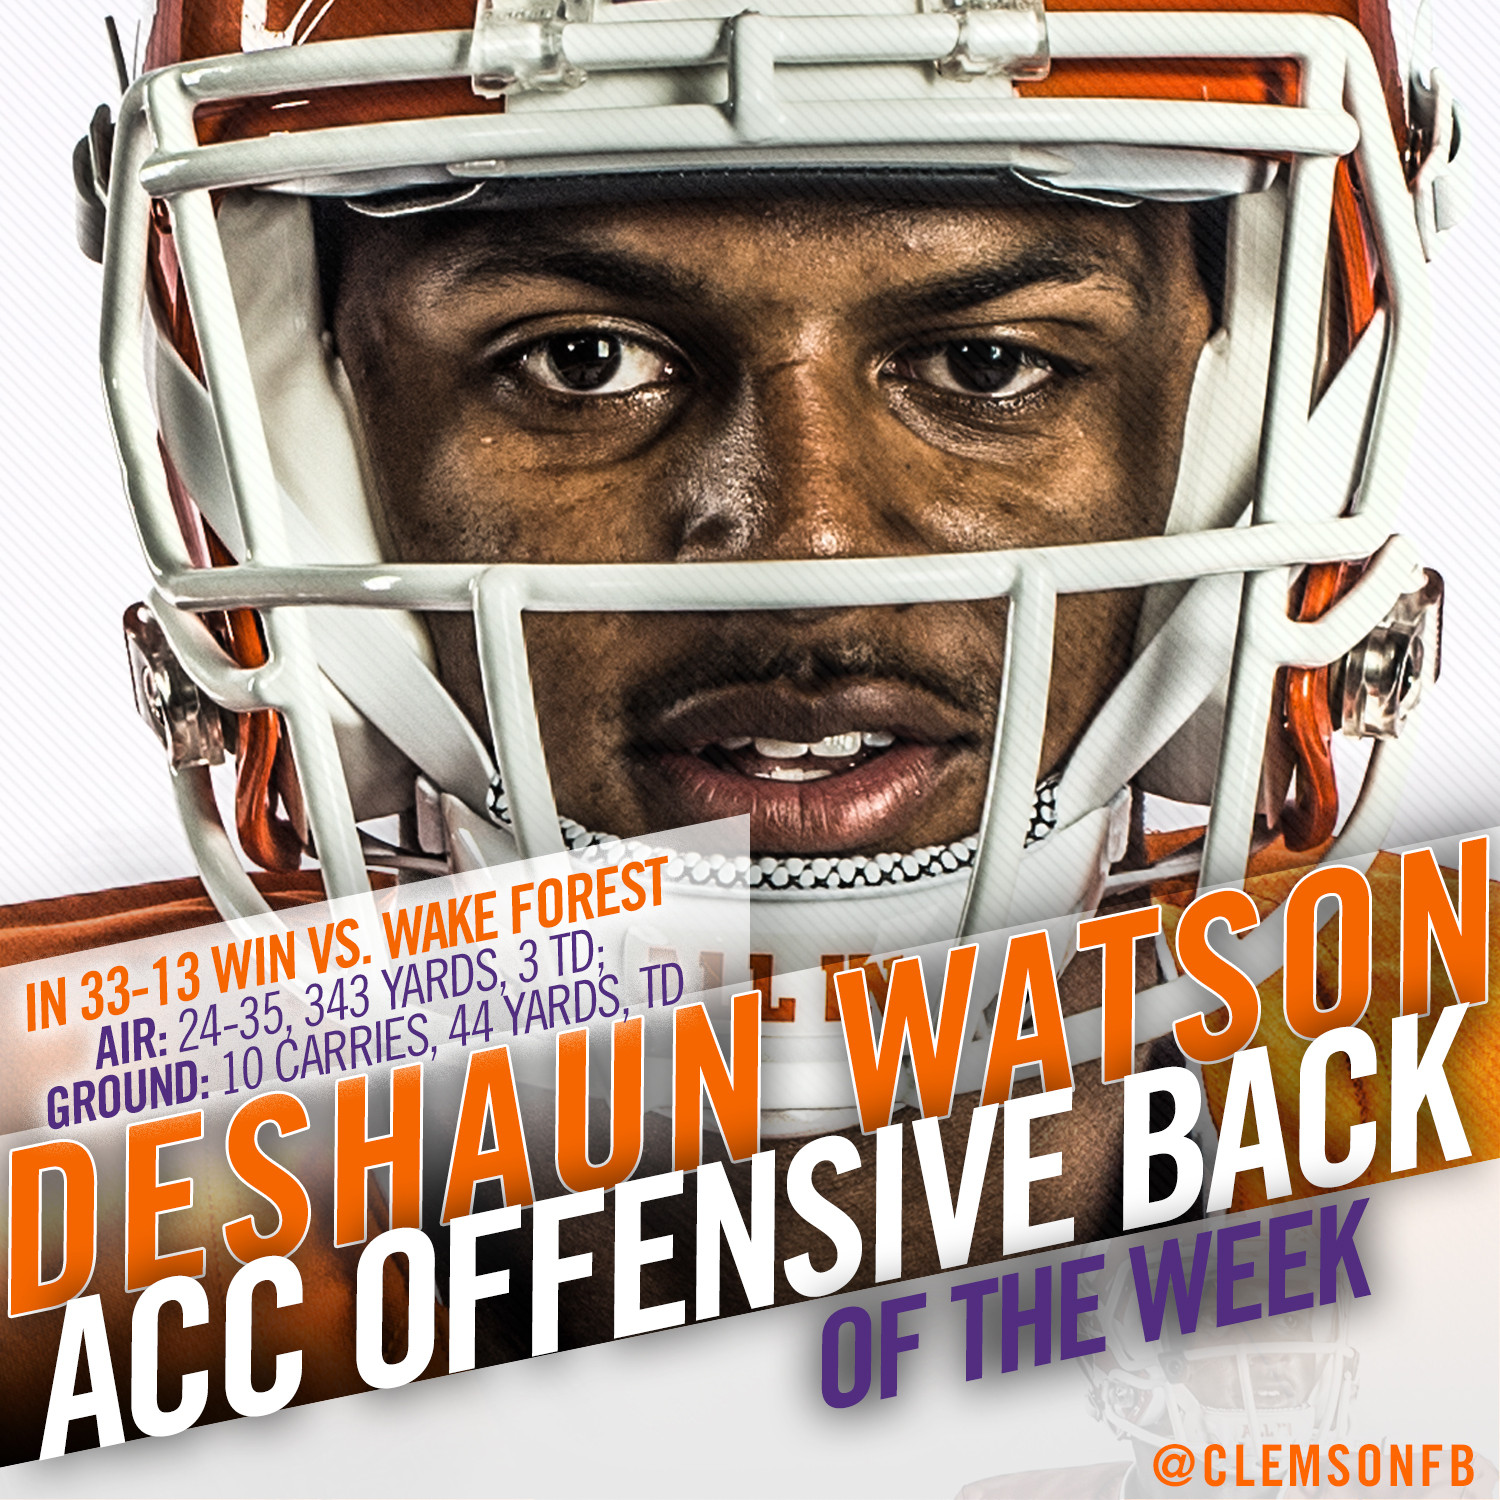 Watson ACC Player of the Week for Fourth Time.